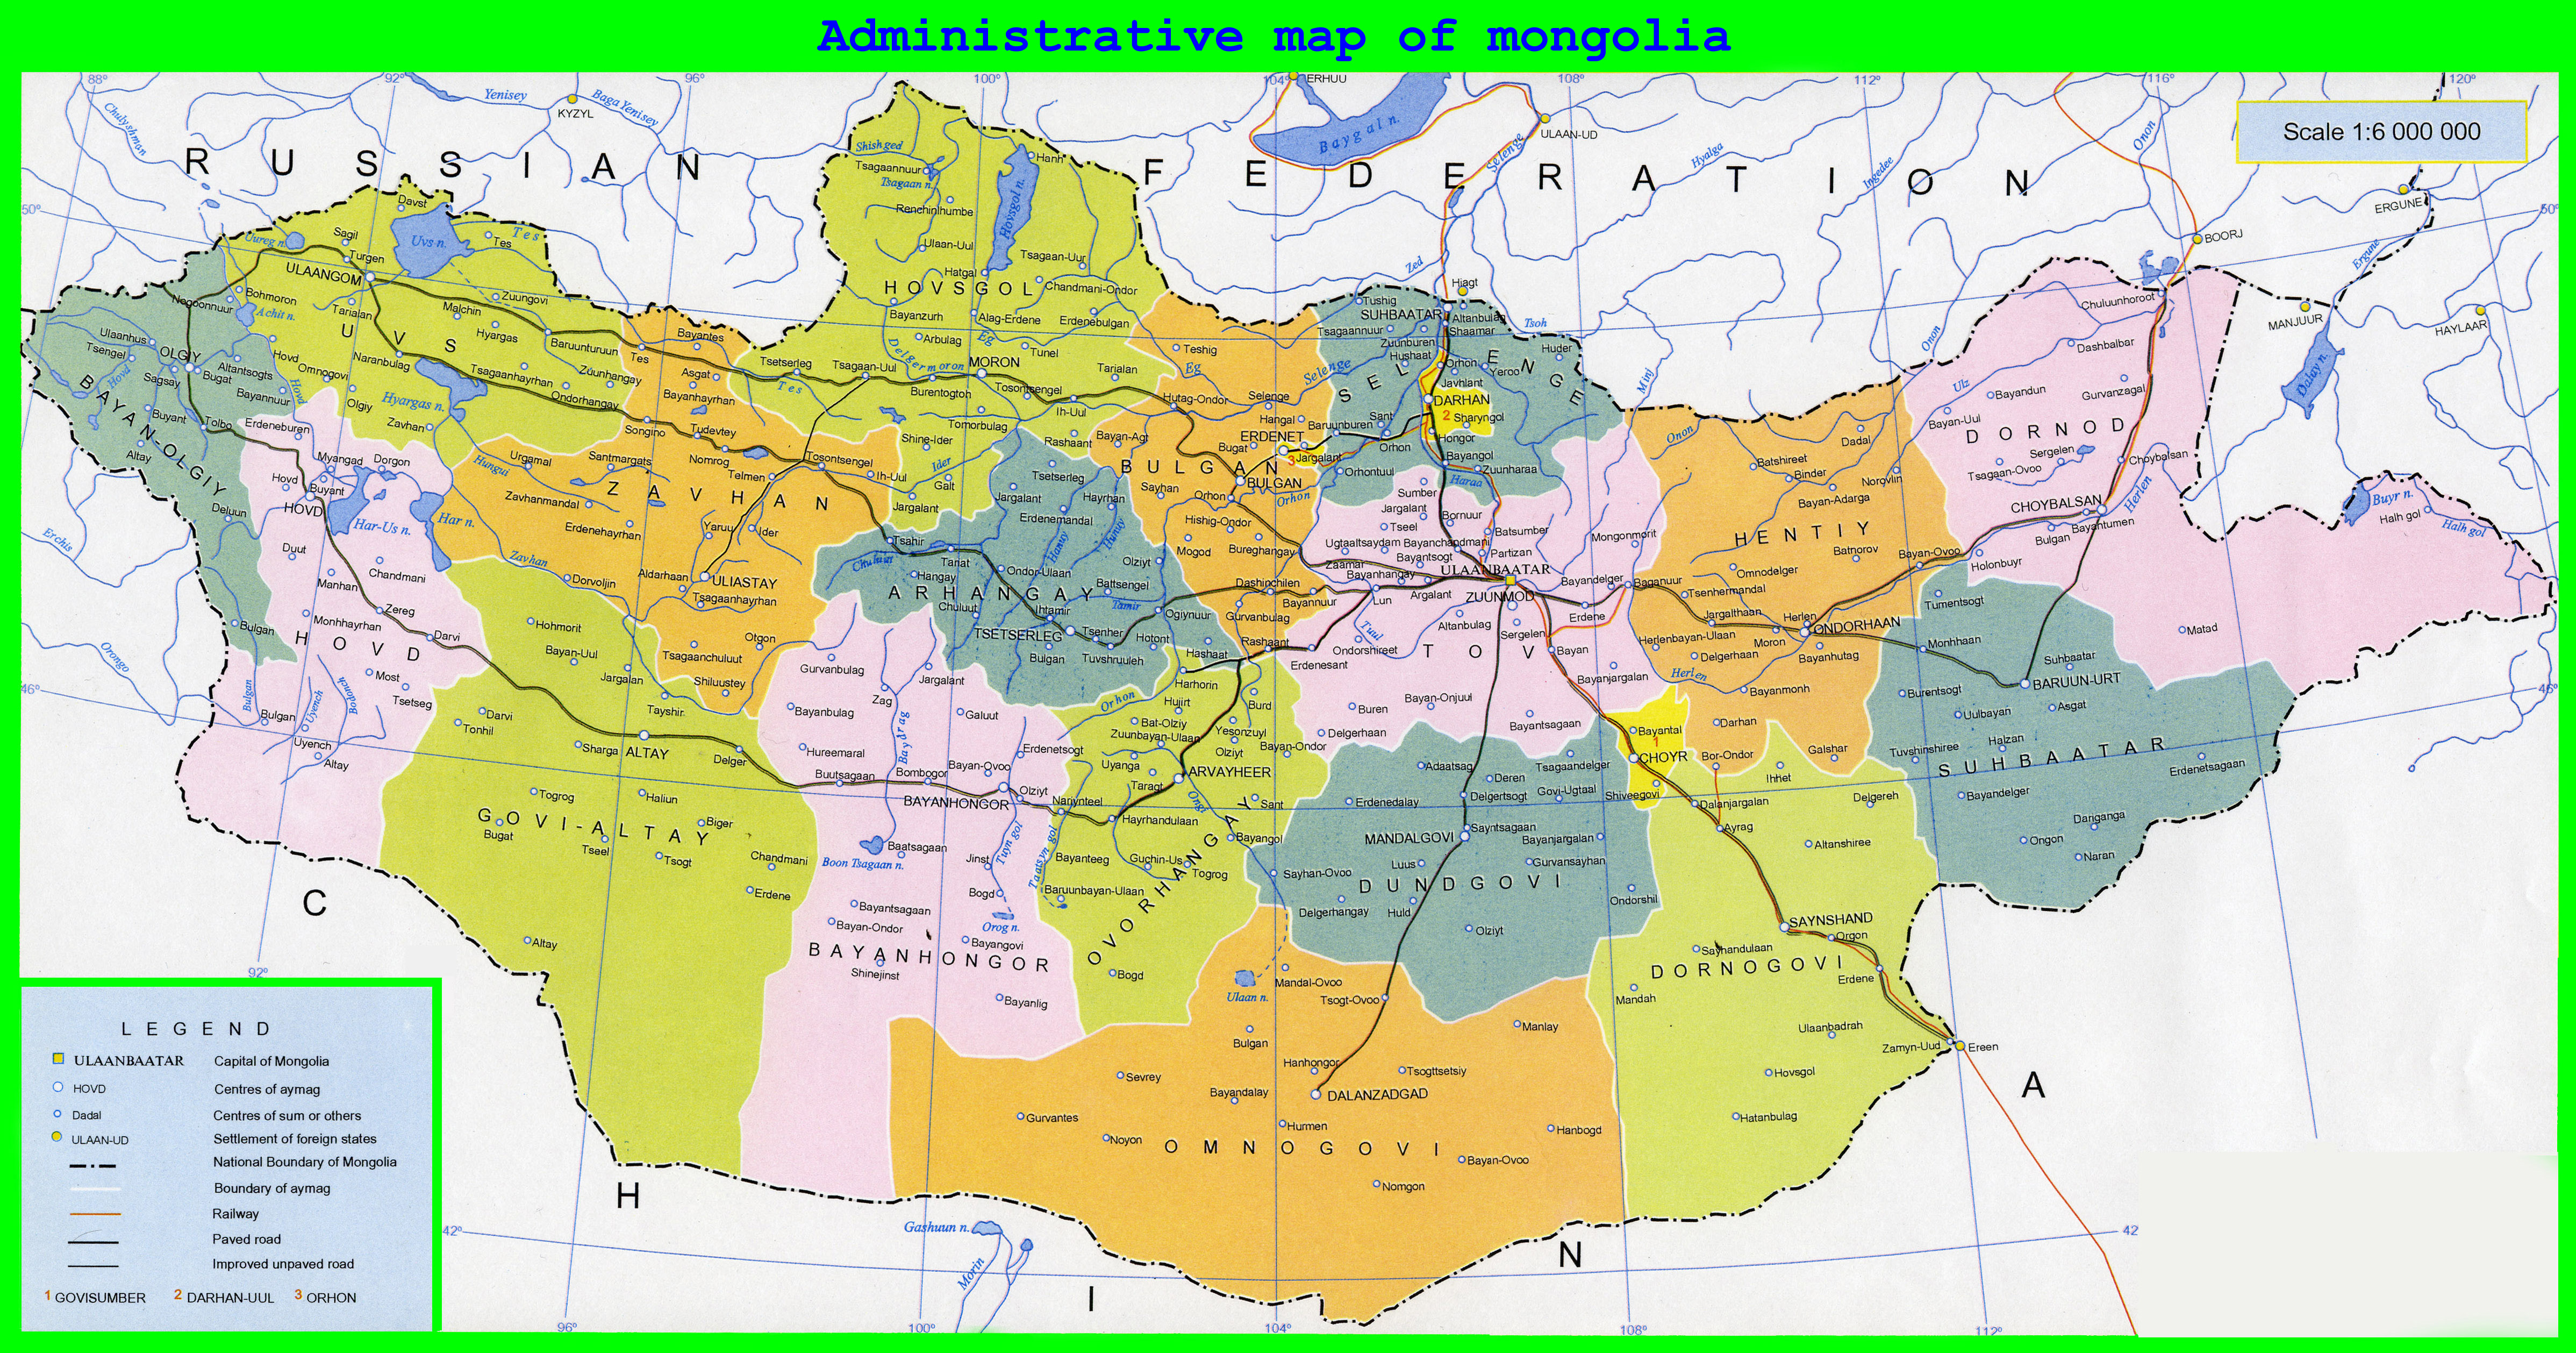 Maps of mongolia map library maps of the world large detailed administrative map of mongolia gumiabroncs Images